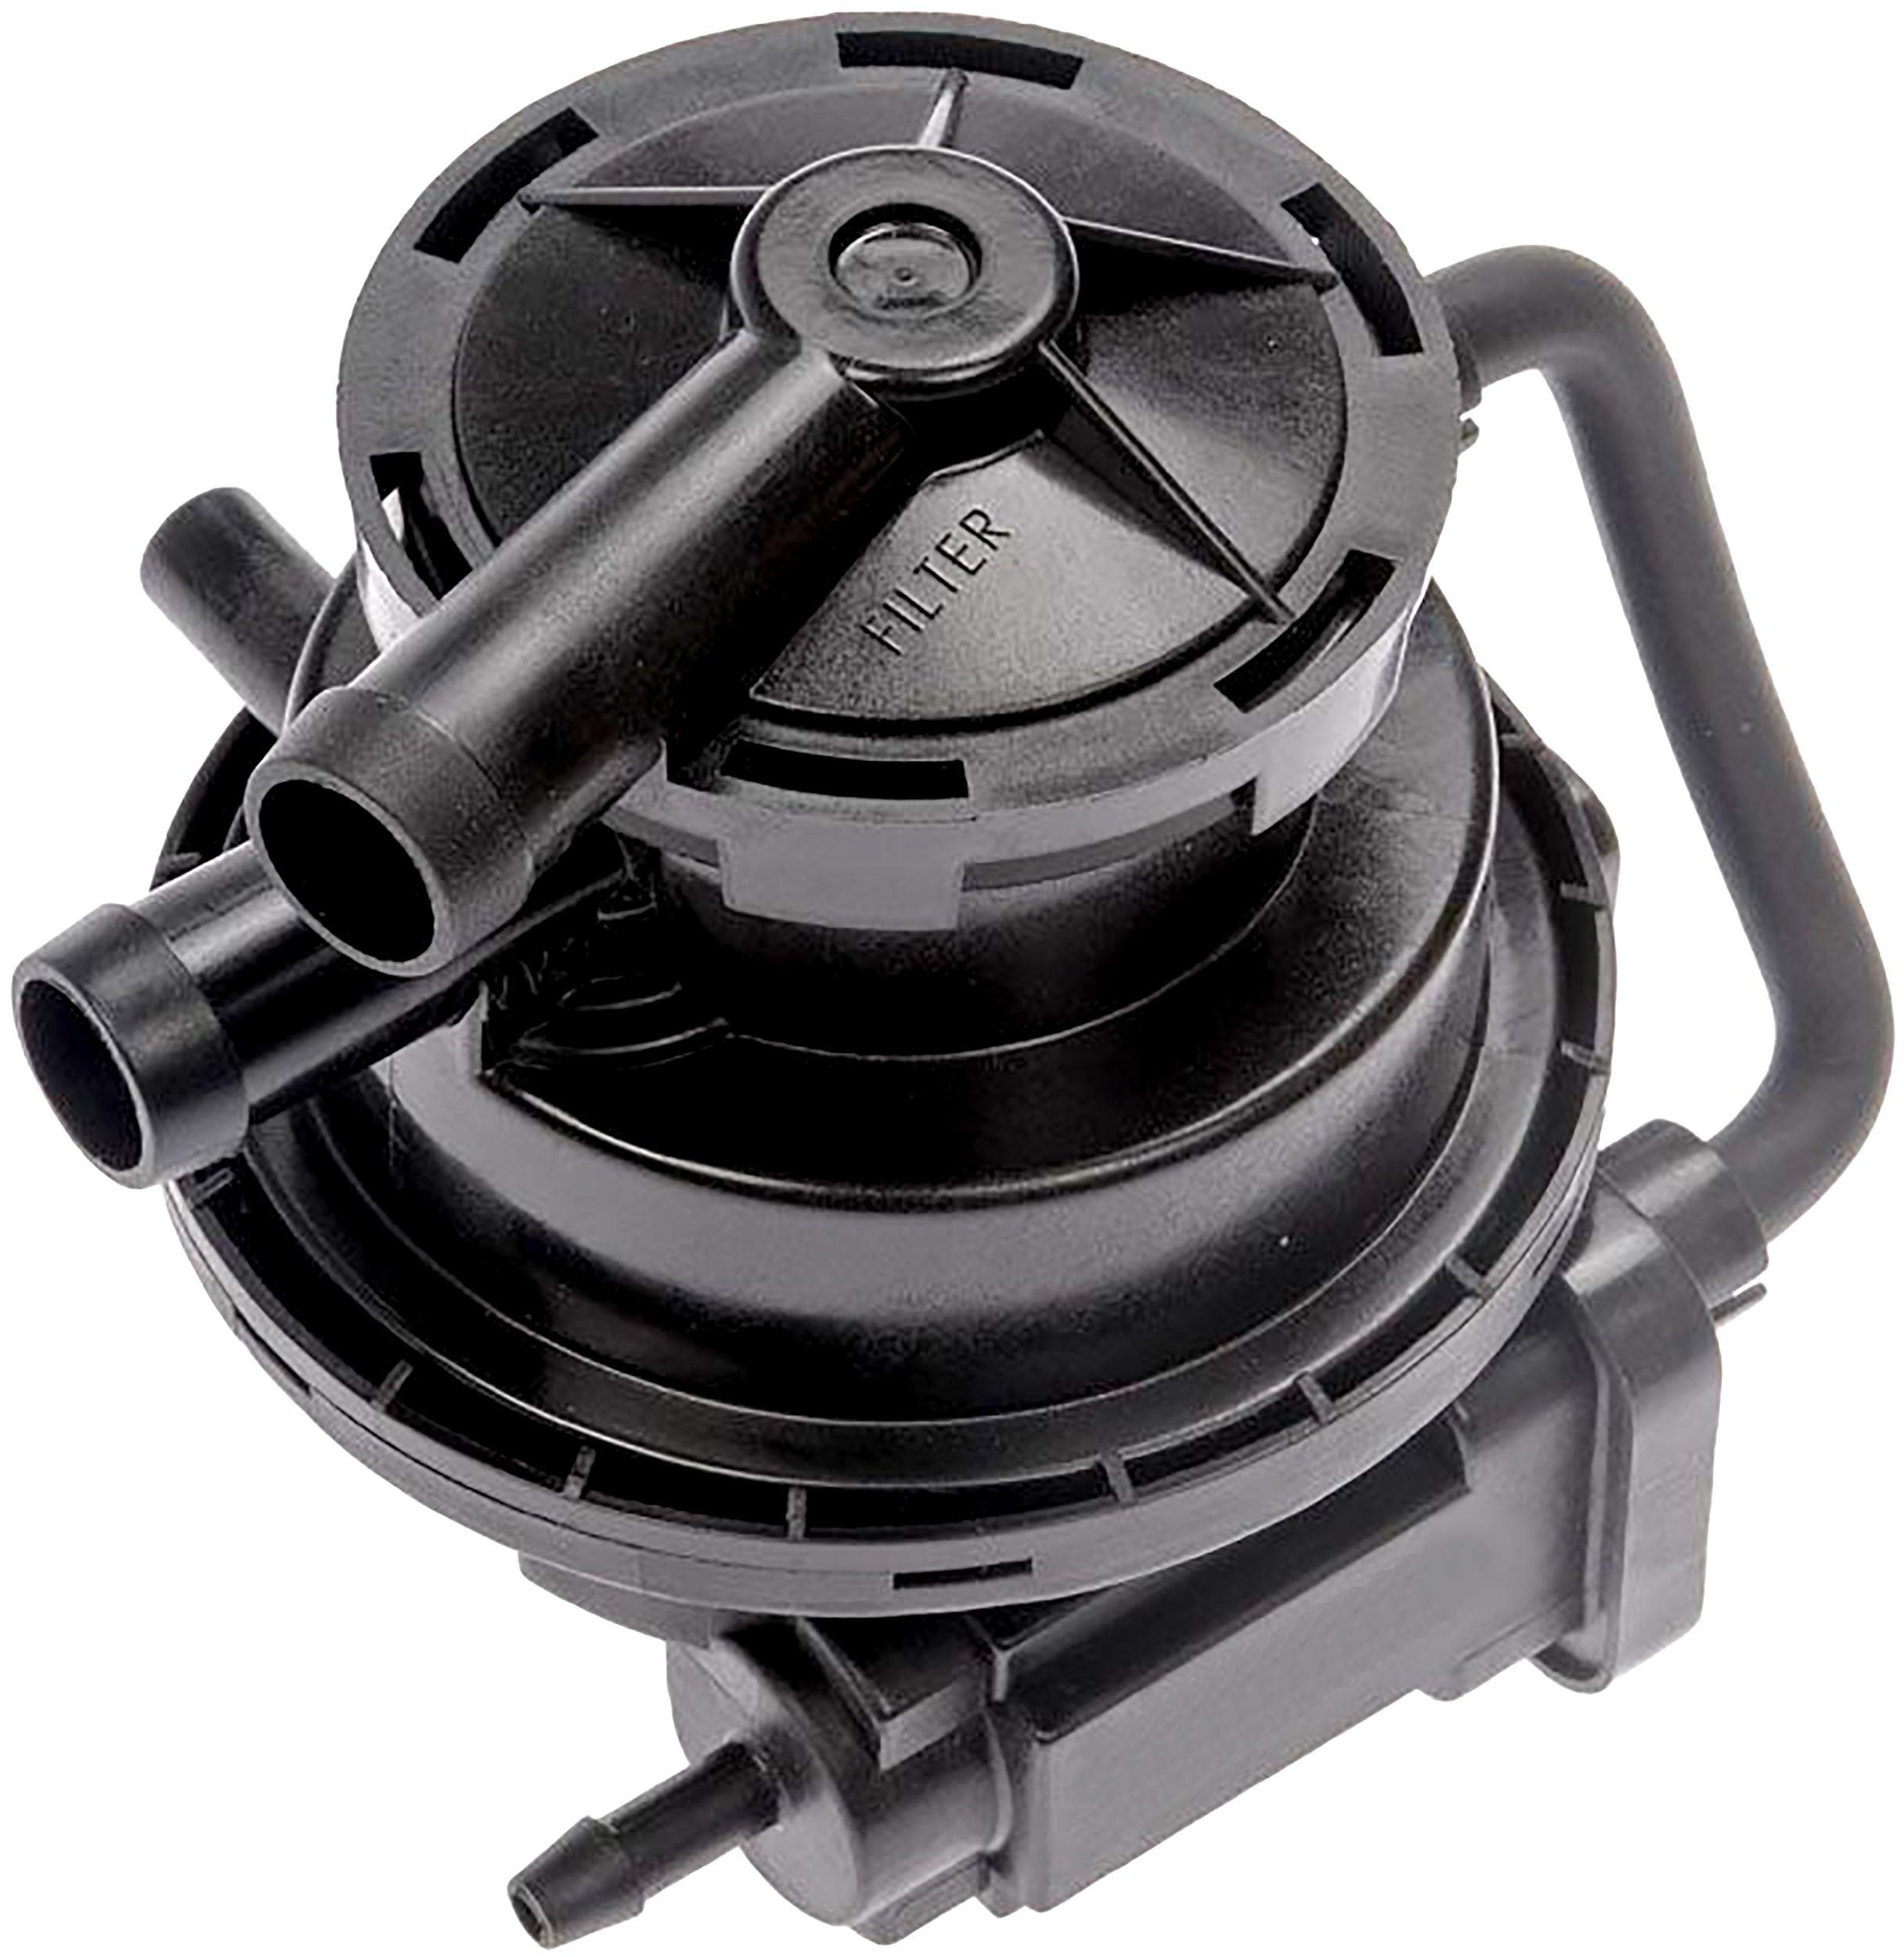 APDTY 113767 Fuel Vapor Canister Emissions Leak Detection Smog Air LDP Pump Fits 2001-2002 Chrysler PT Cruiser (Replaces 4891420AB, 4891420AA, 04891420AA)